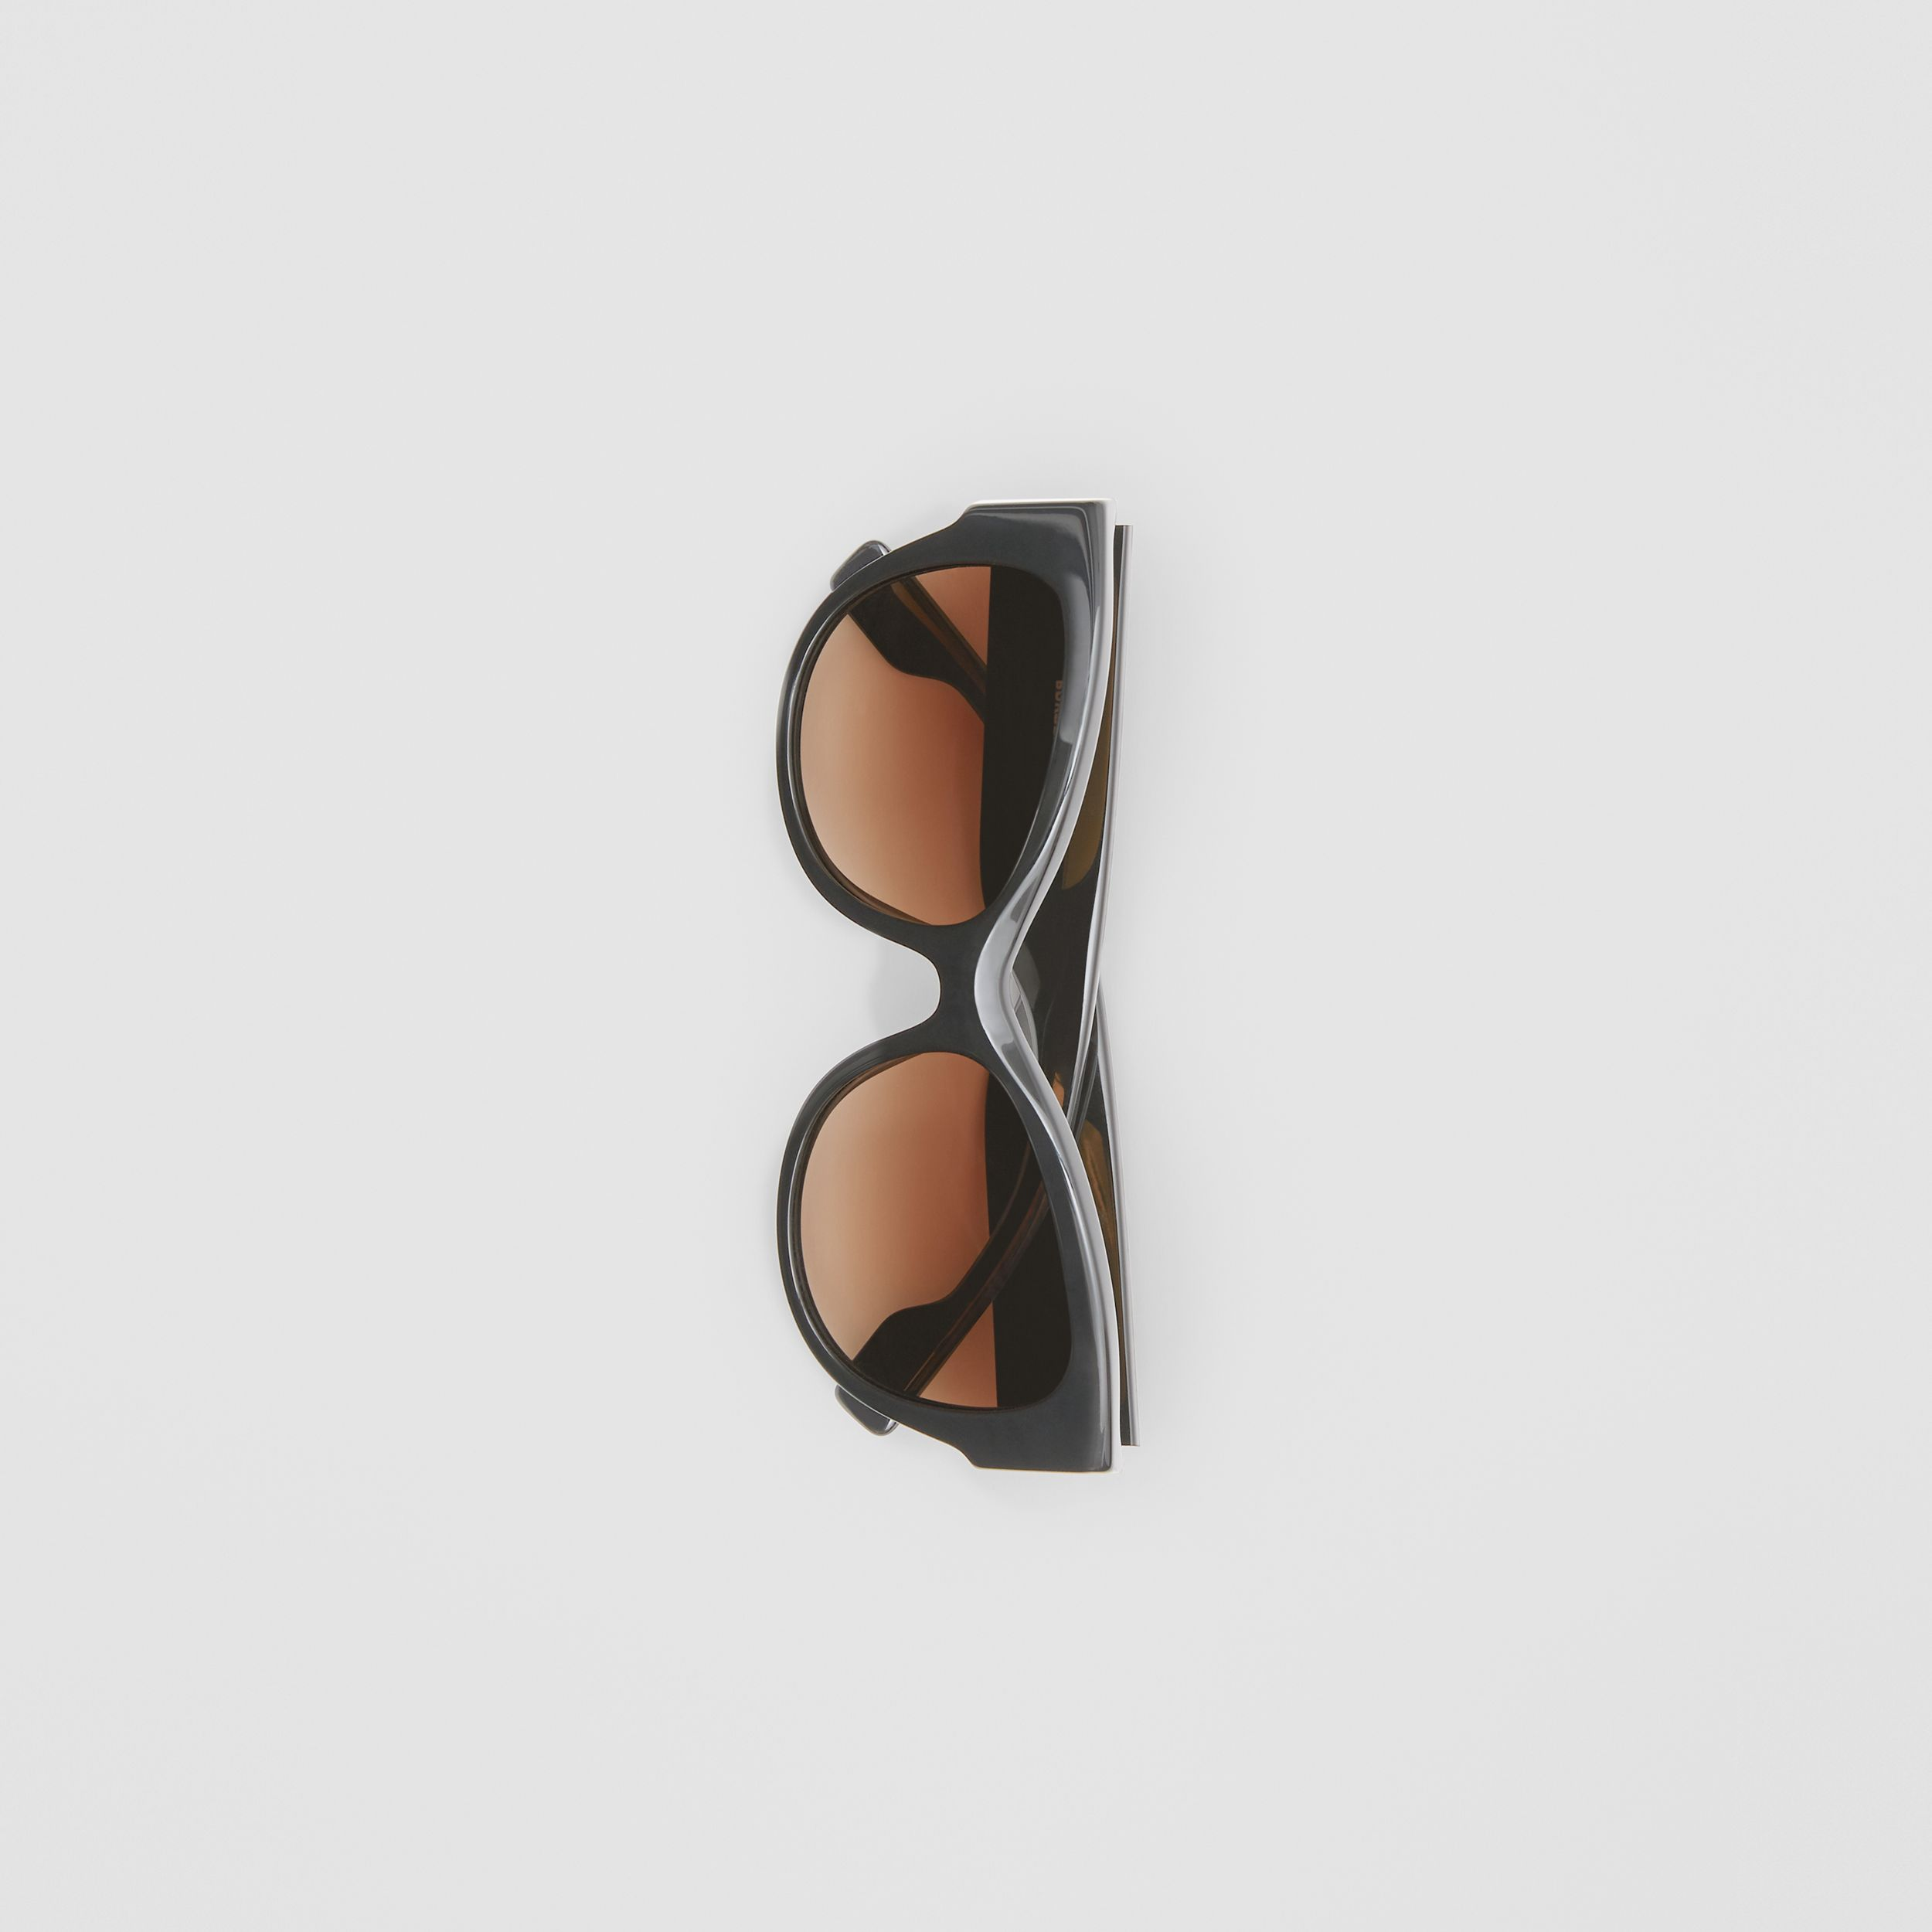 Monogram Detail Butterfly Frame Sunglasses in Black/vermillion - Women | Burberry - 4